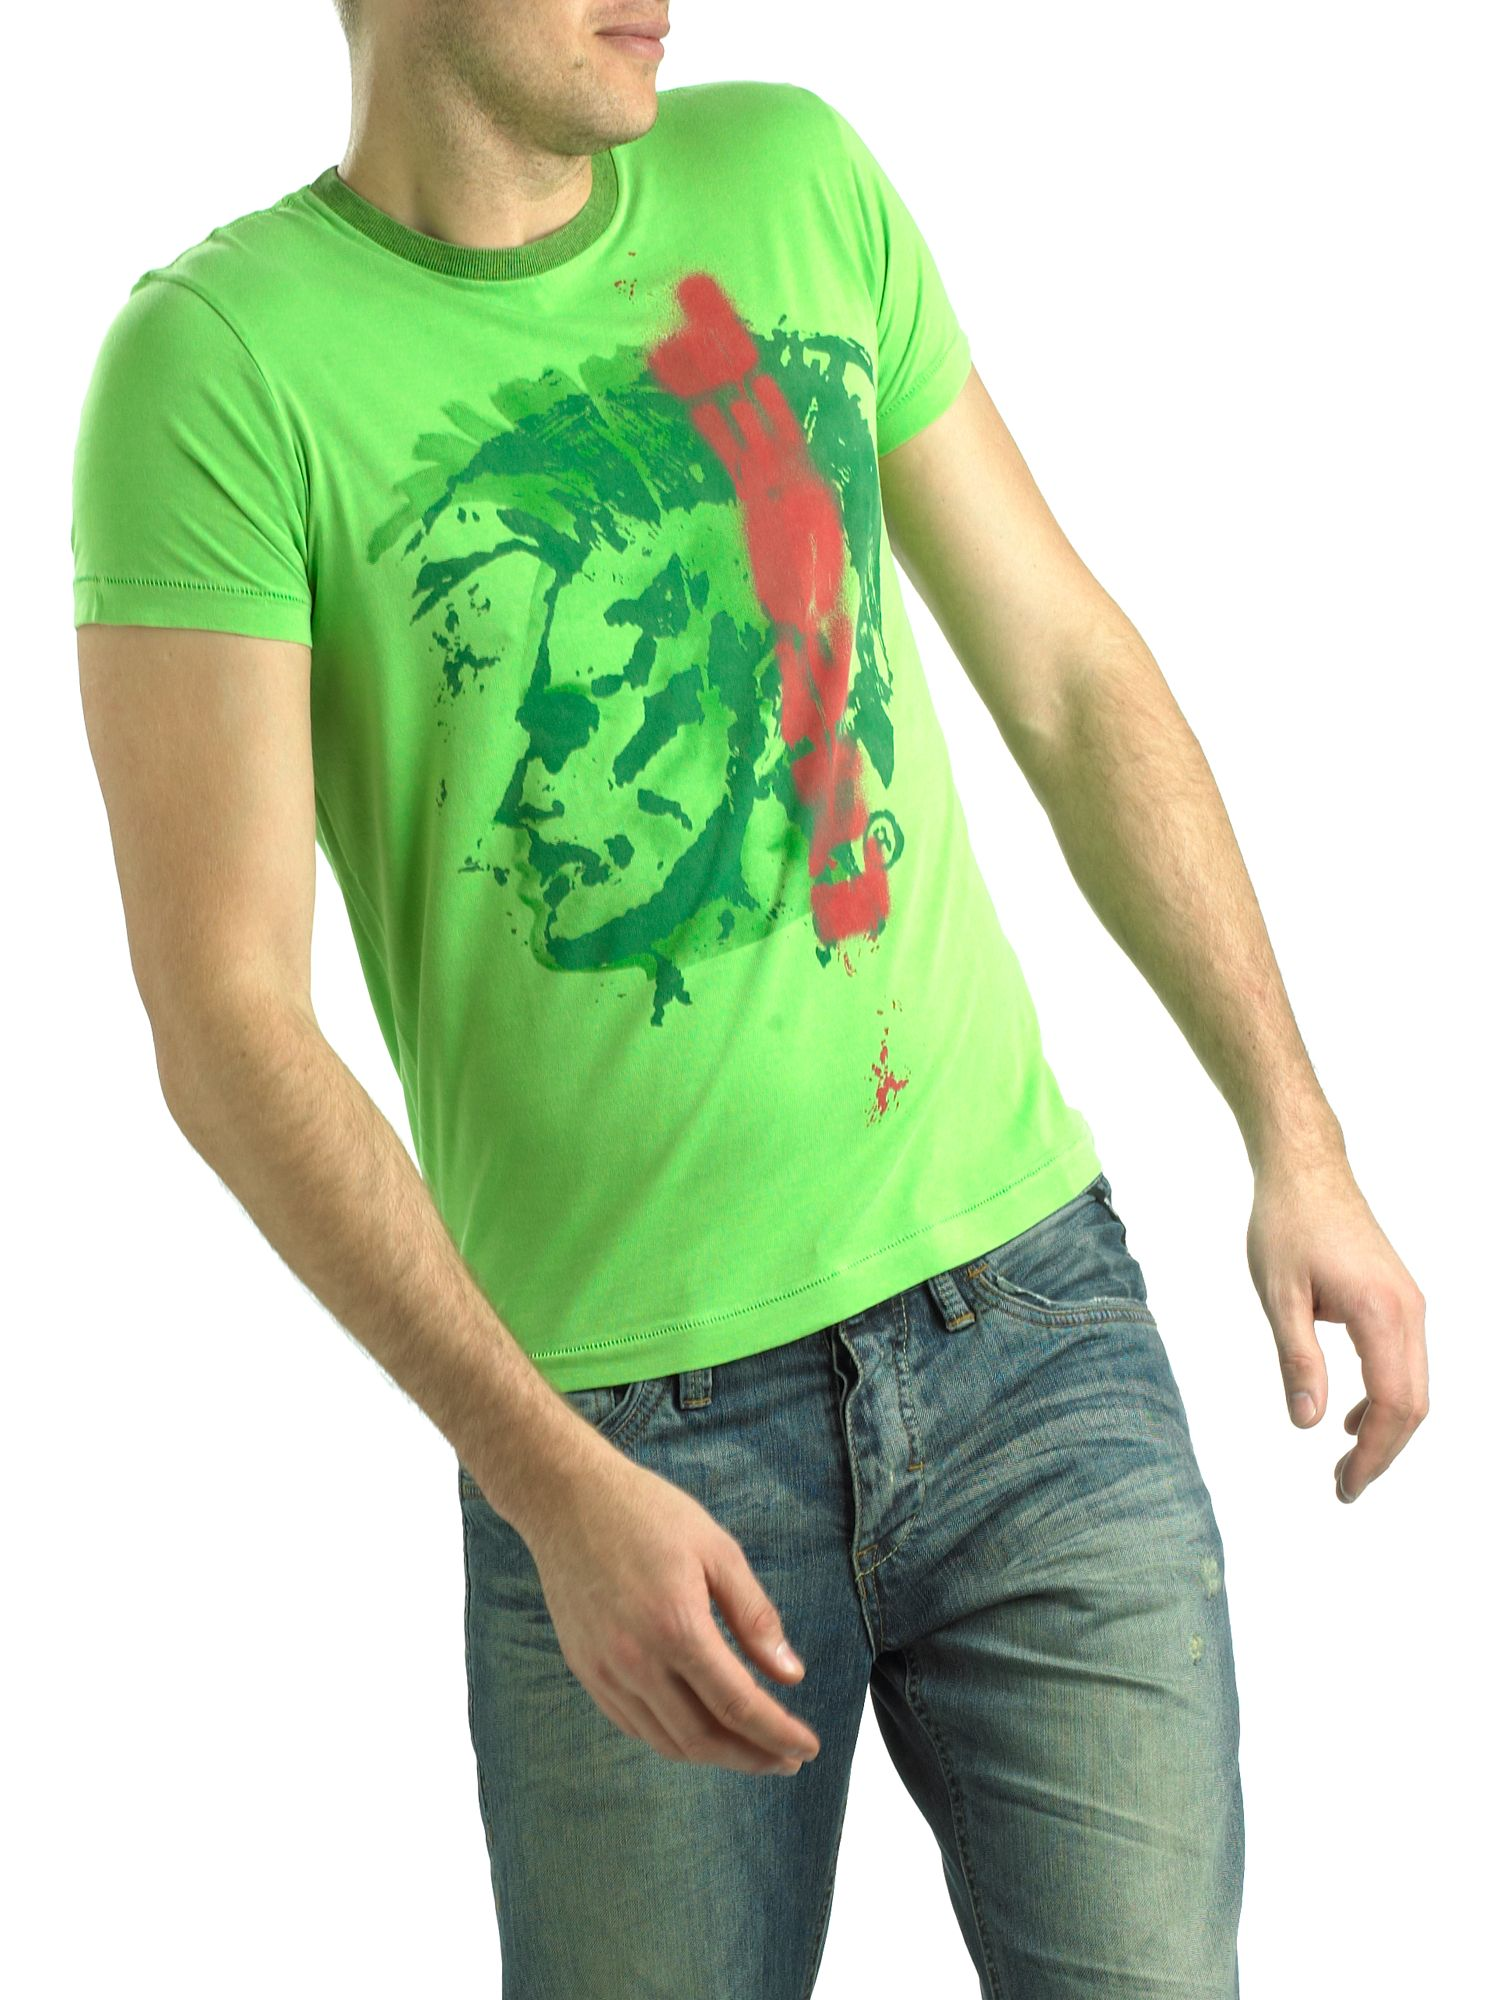 Diesel T-shirt mohican product image